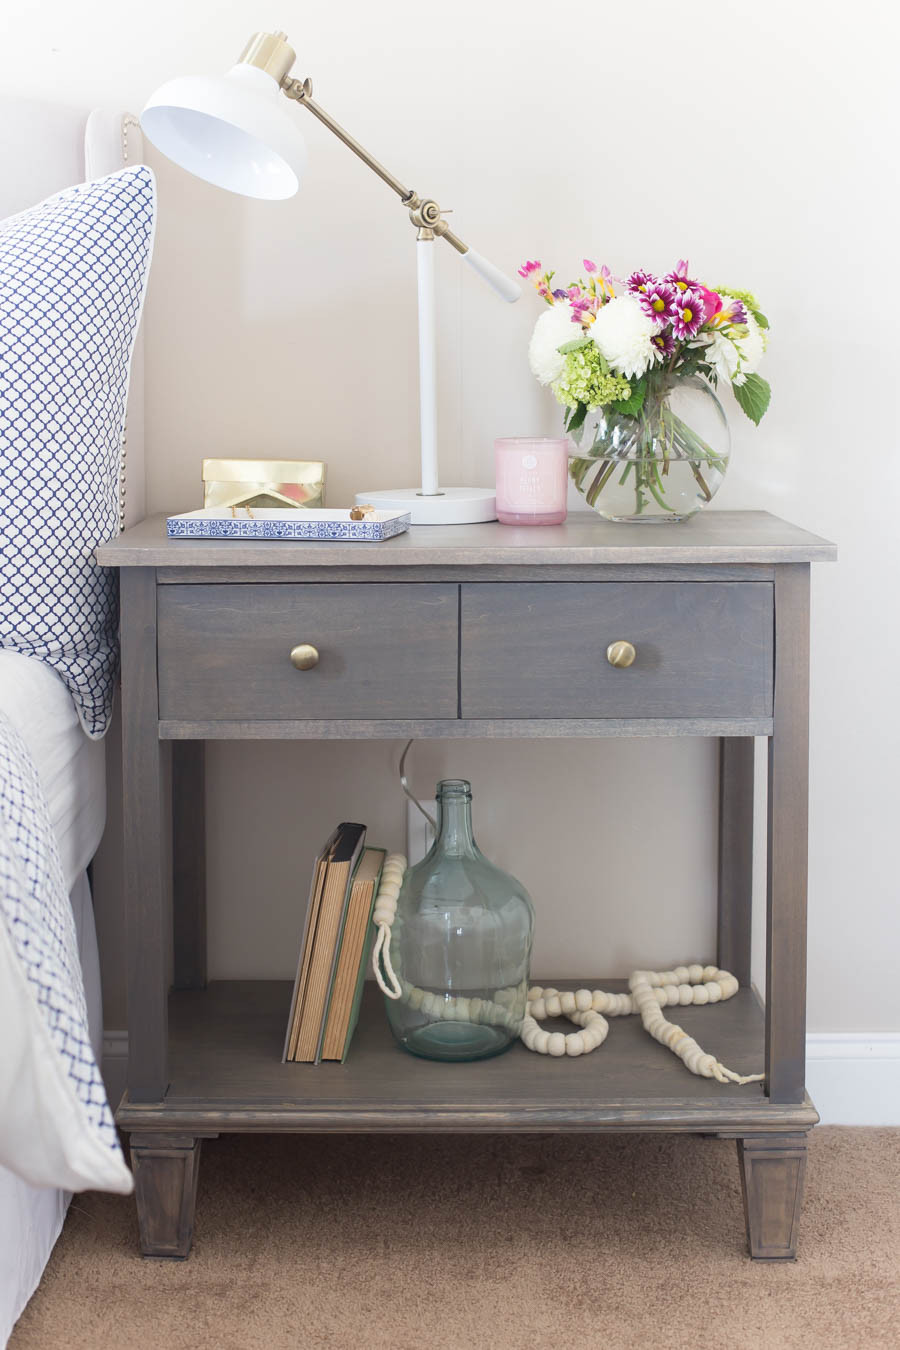 Best ideas about DIY Bed Table . Save or Pin DIY Pottery Barn Inspired Sausalito Bedside Table Now.